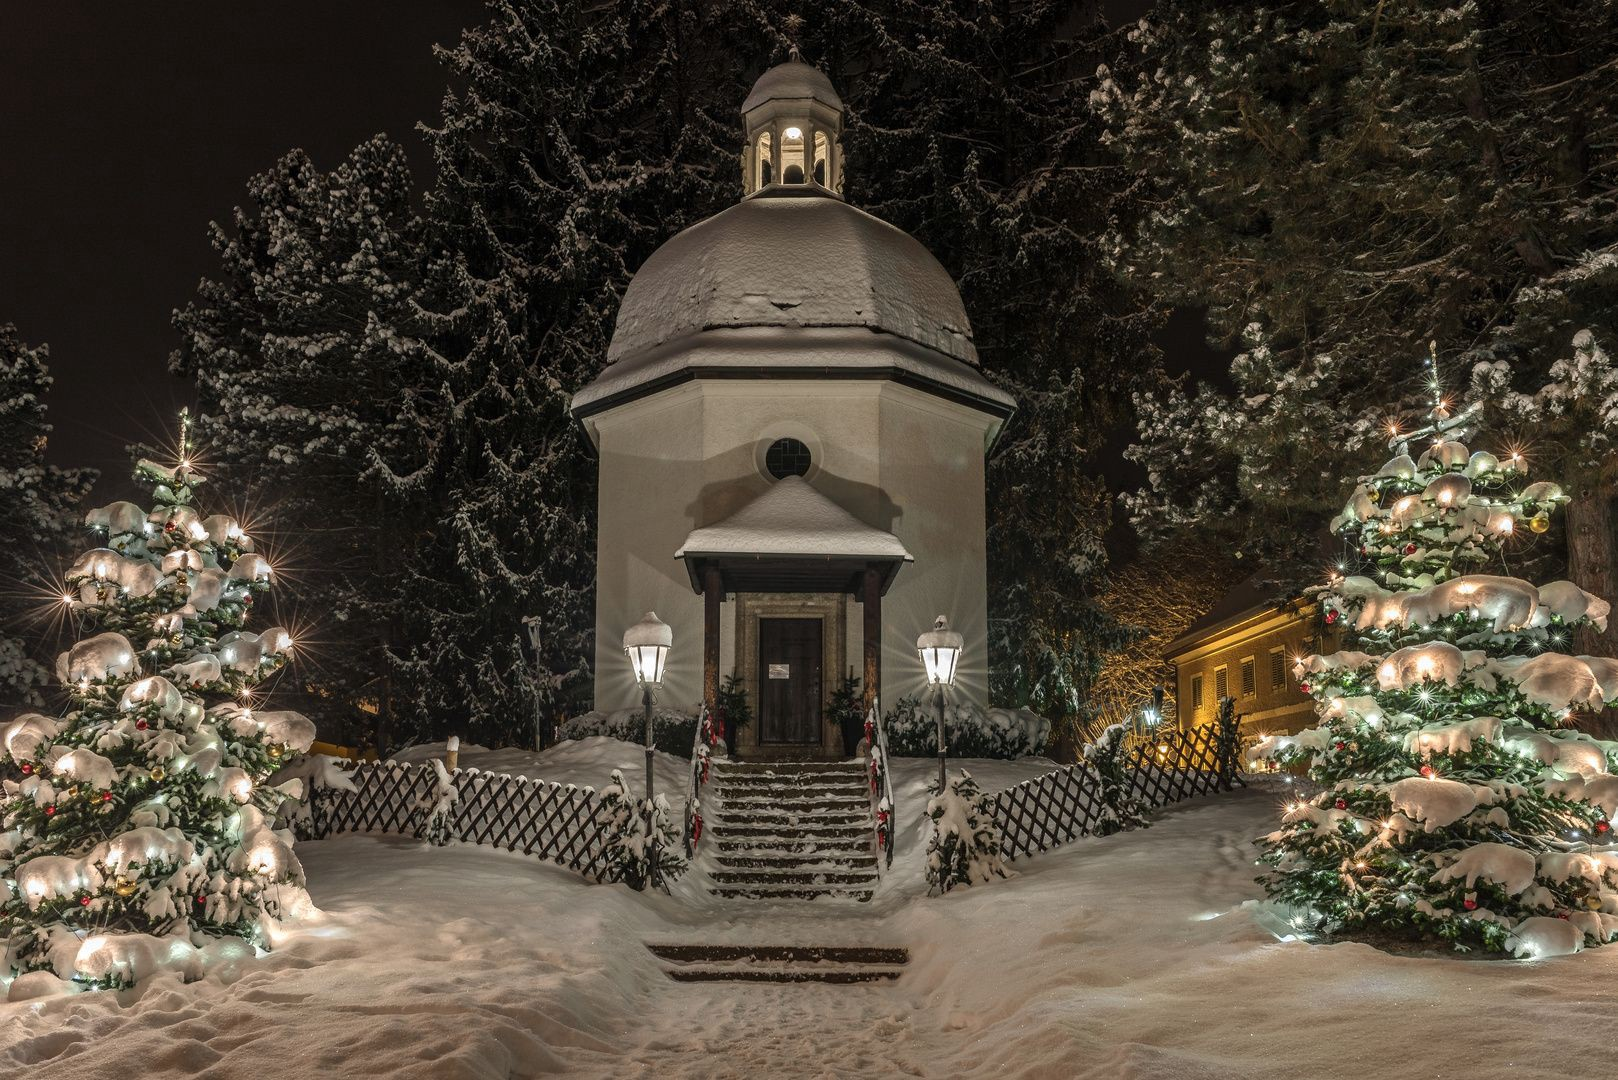 Silent Night Chapel at night, lit by string lights and lanturns